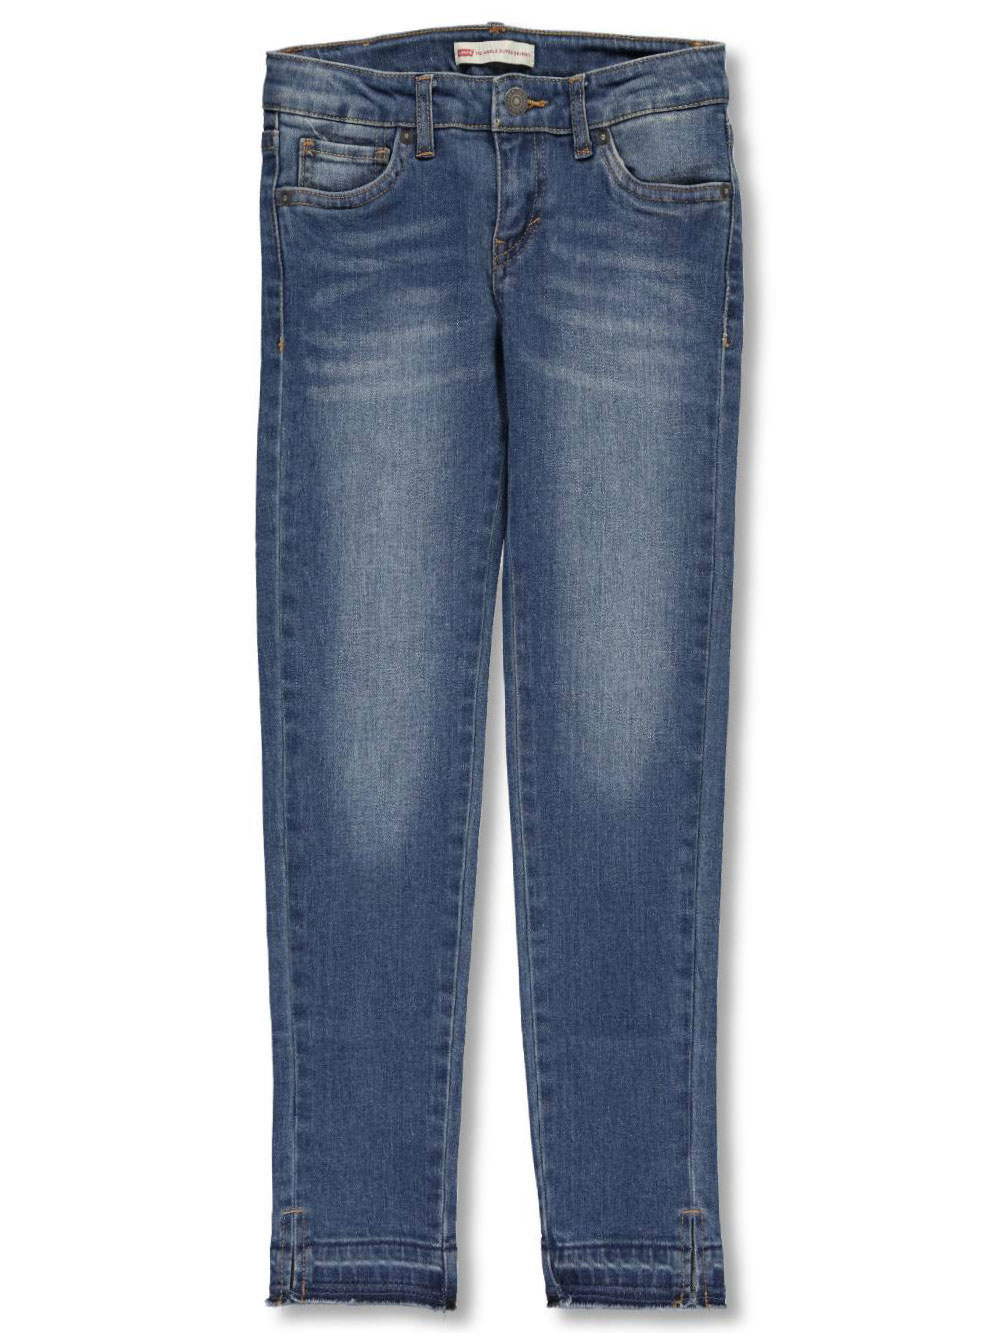 Jeans Ankle Skinny Fit